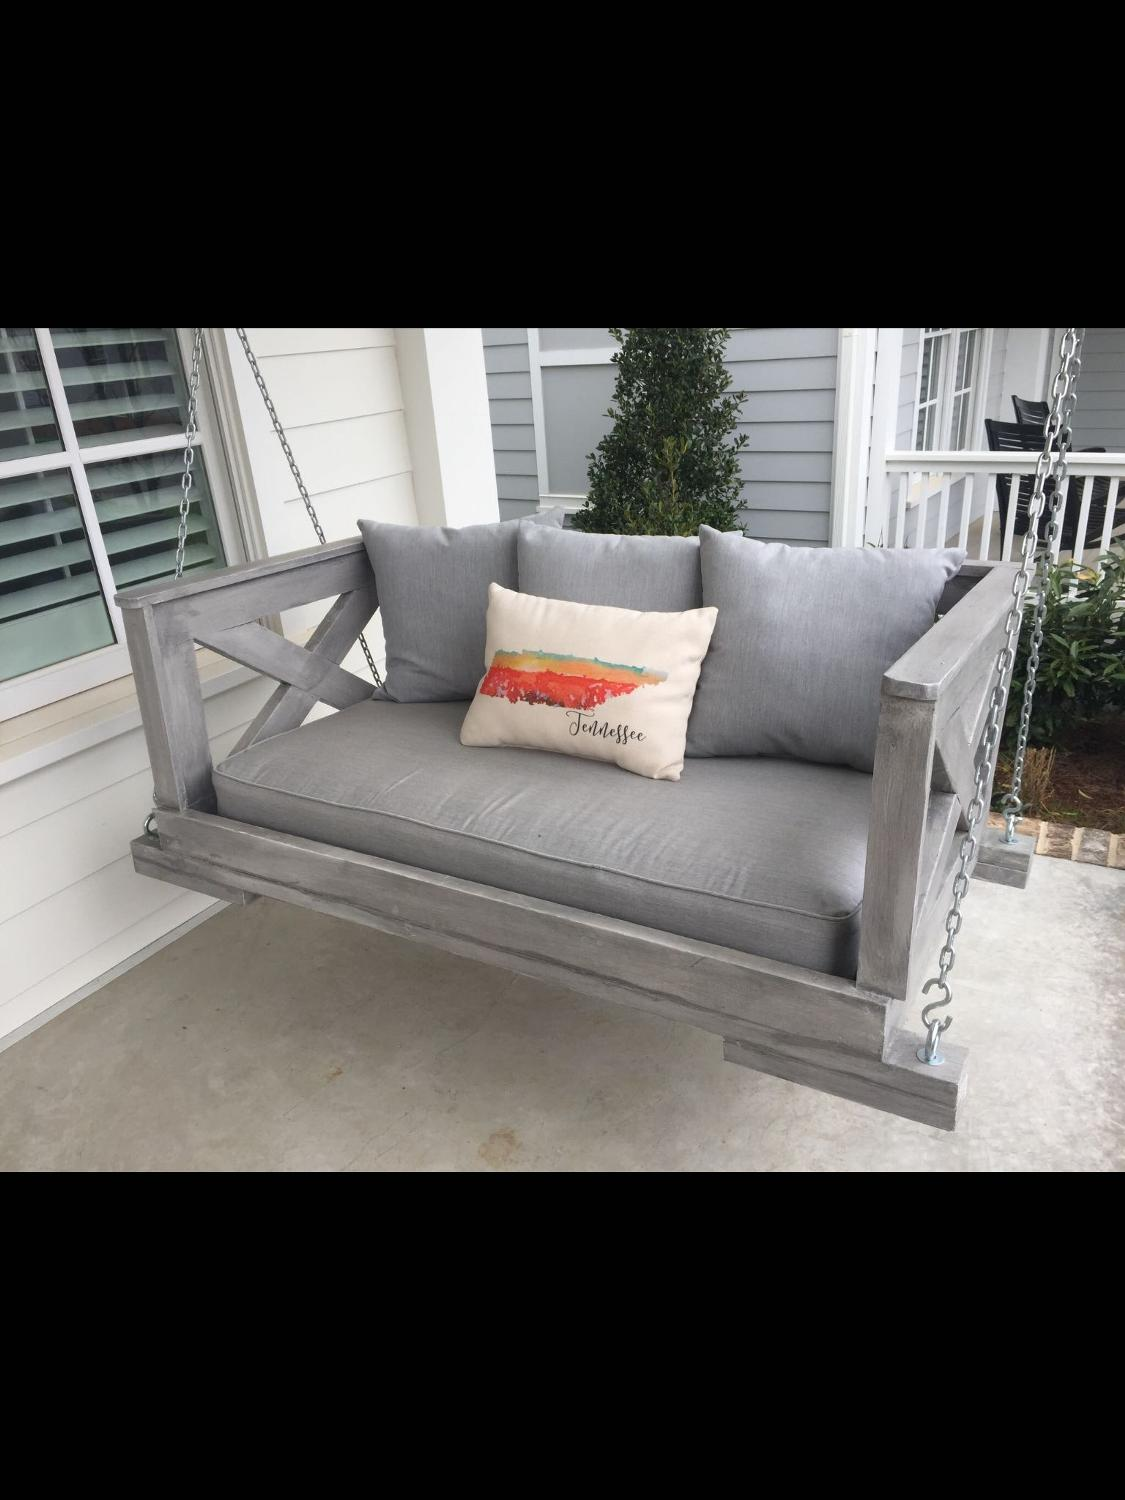 Best Hanging Porch Swing Bed This One Is Made With A Crib Mattress But Can Be Made With Twin And Other Farmhouse Furniture Made To Order For Sale In Hohenwald Tennessee For